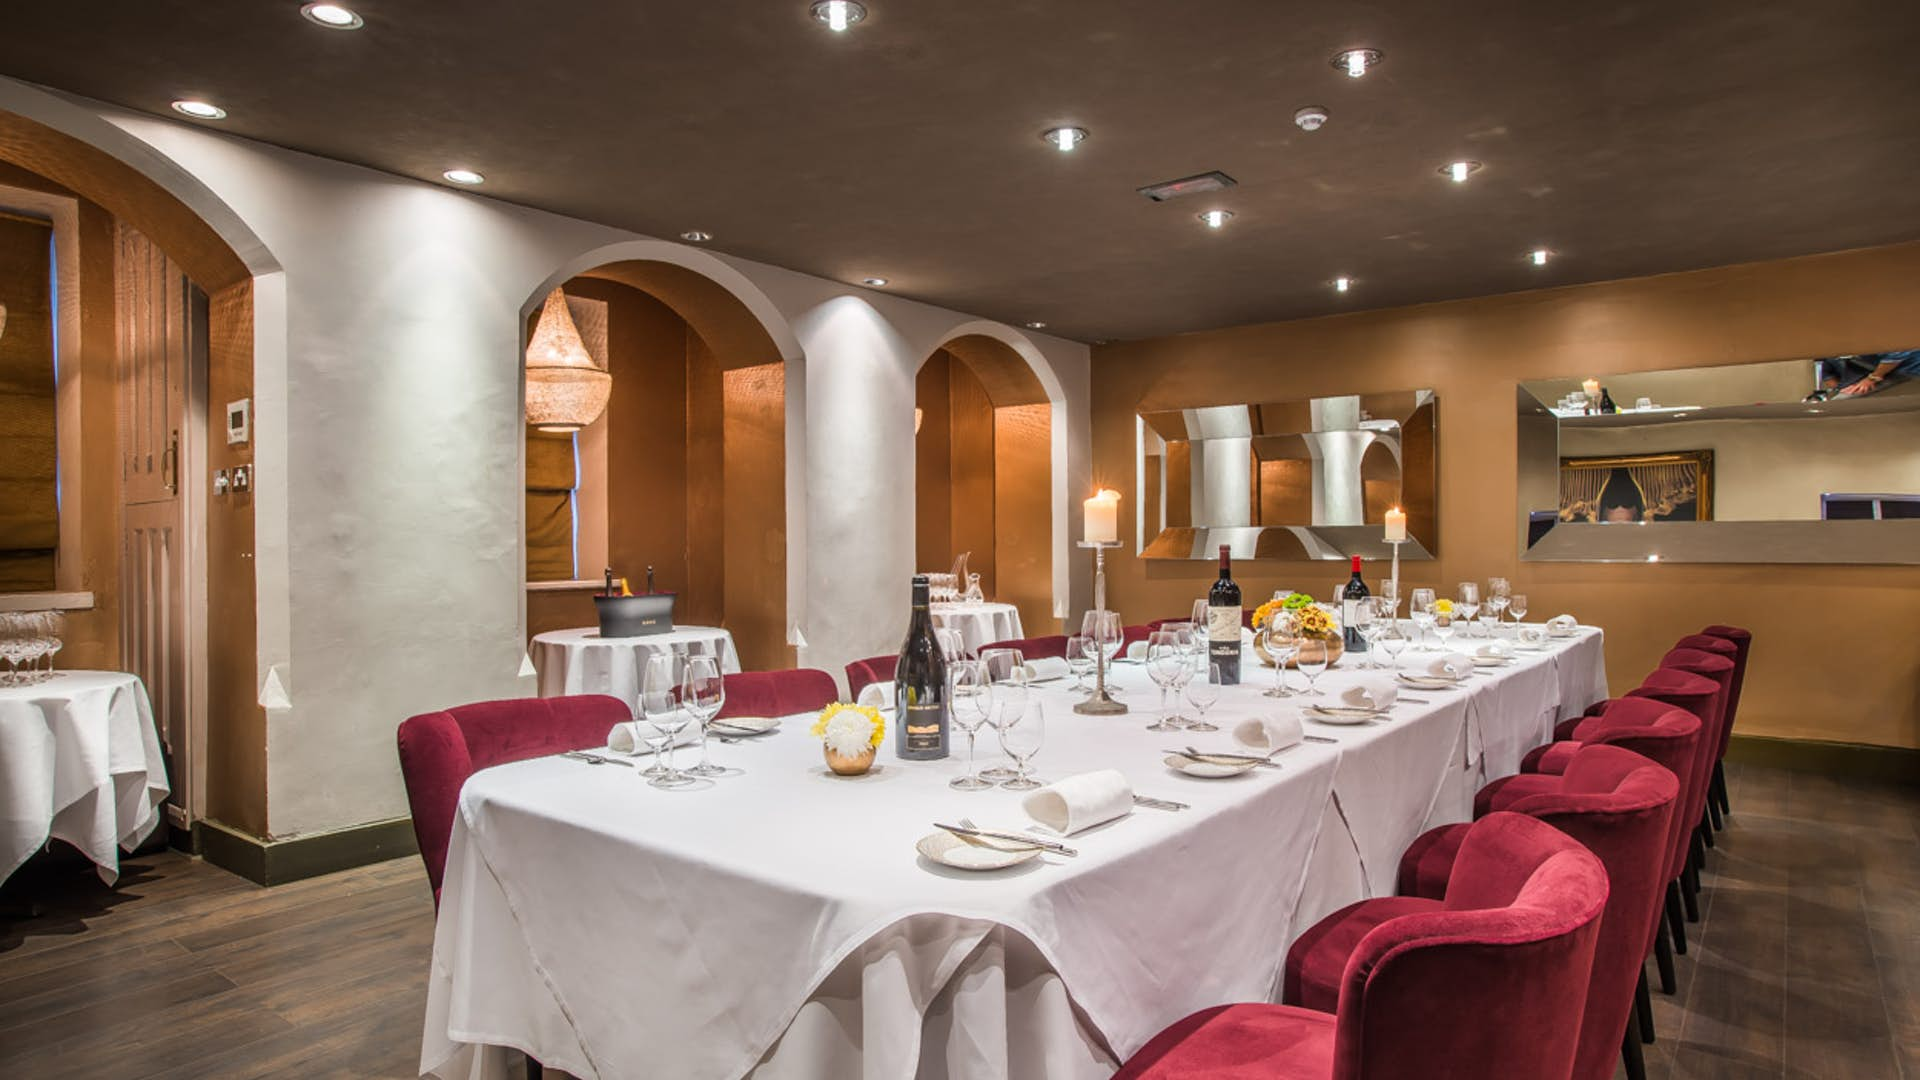 Main Street Auto >> La Cave - Private Dining Room | Business | Park House Restaurant & Dining Rooms